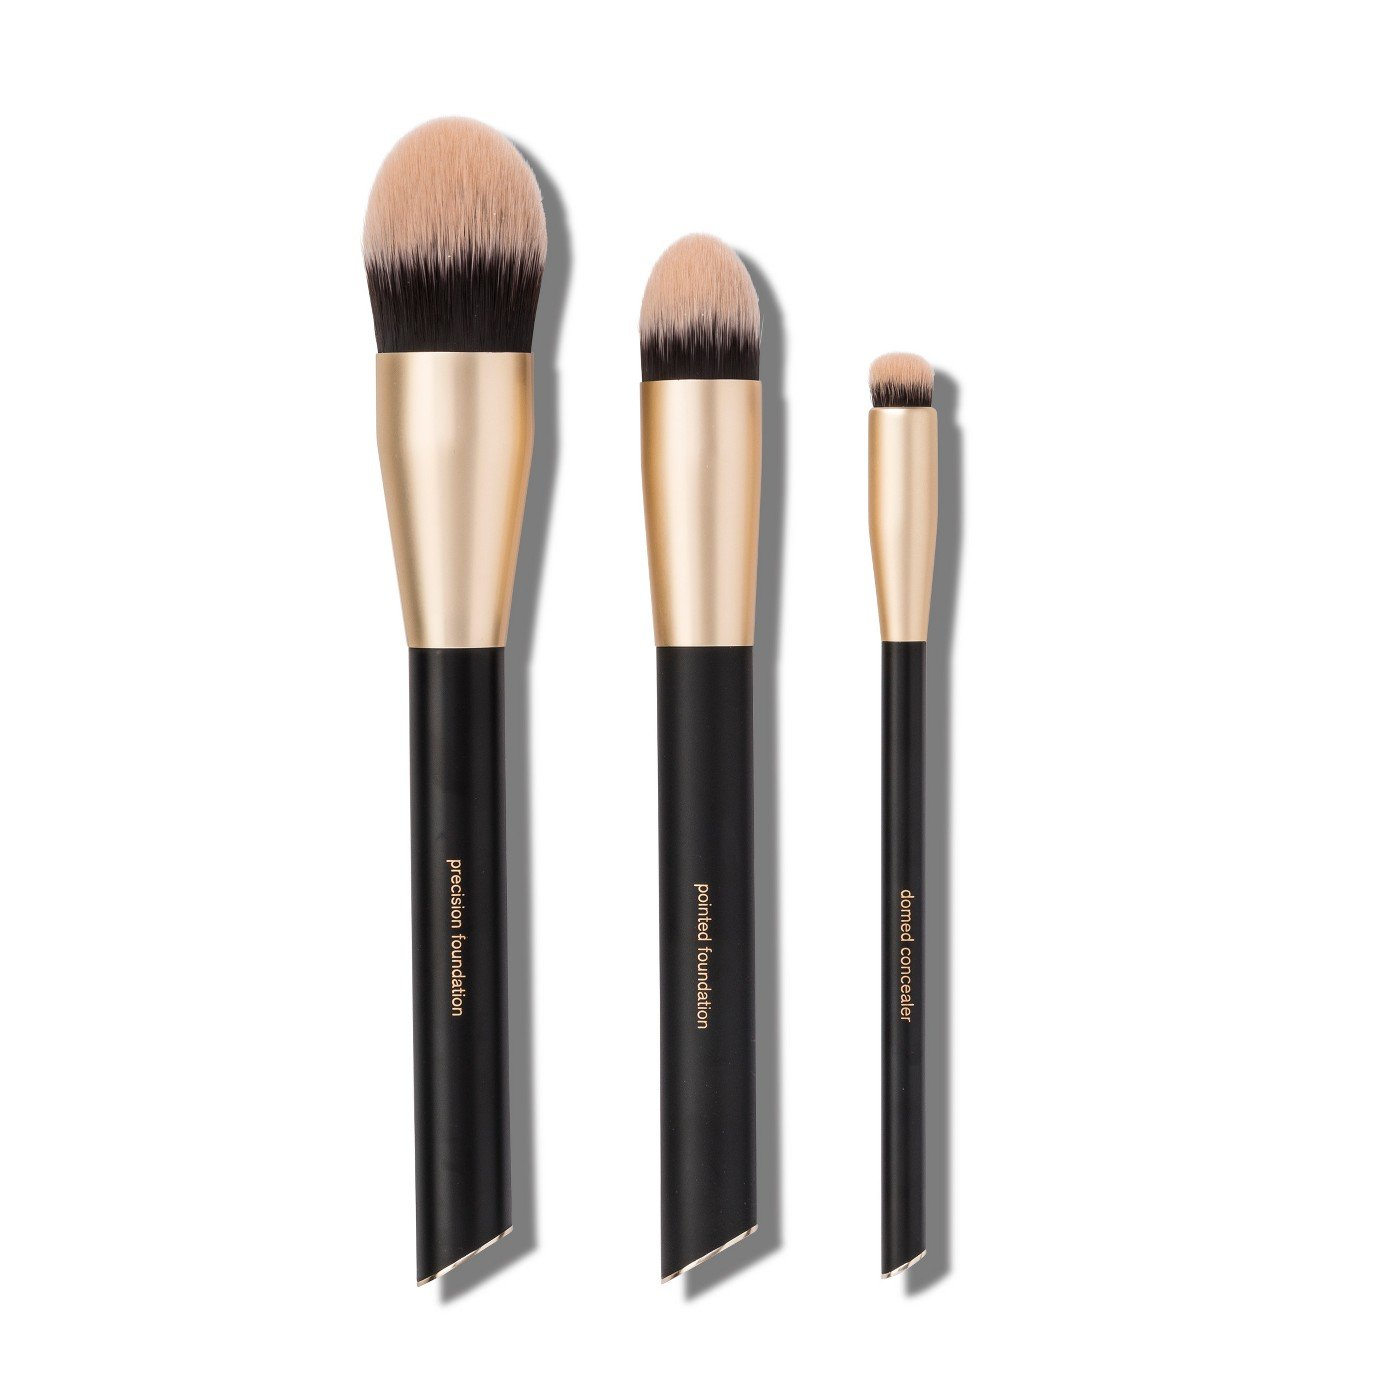 Sonia Kashuk Professional Flawless Foundation Makeup Brush Set Pack Of 1